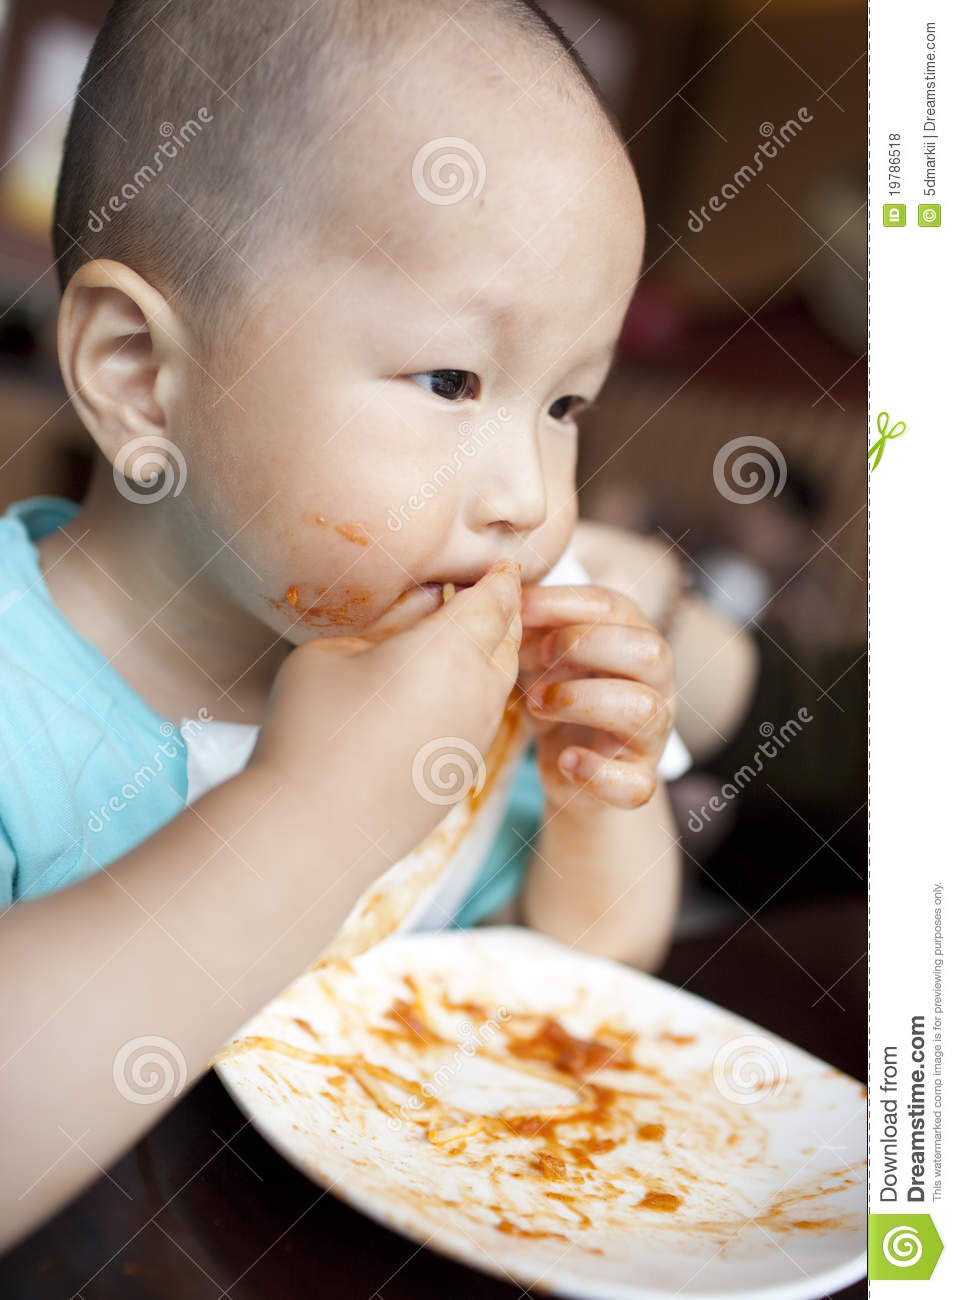 Chinese People Eating Babies Pictures to Pin on Pinterest ...